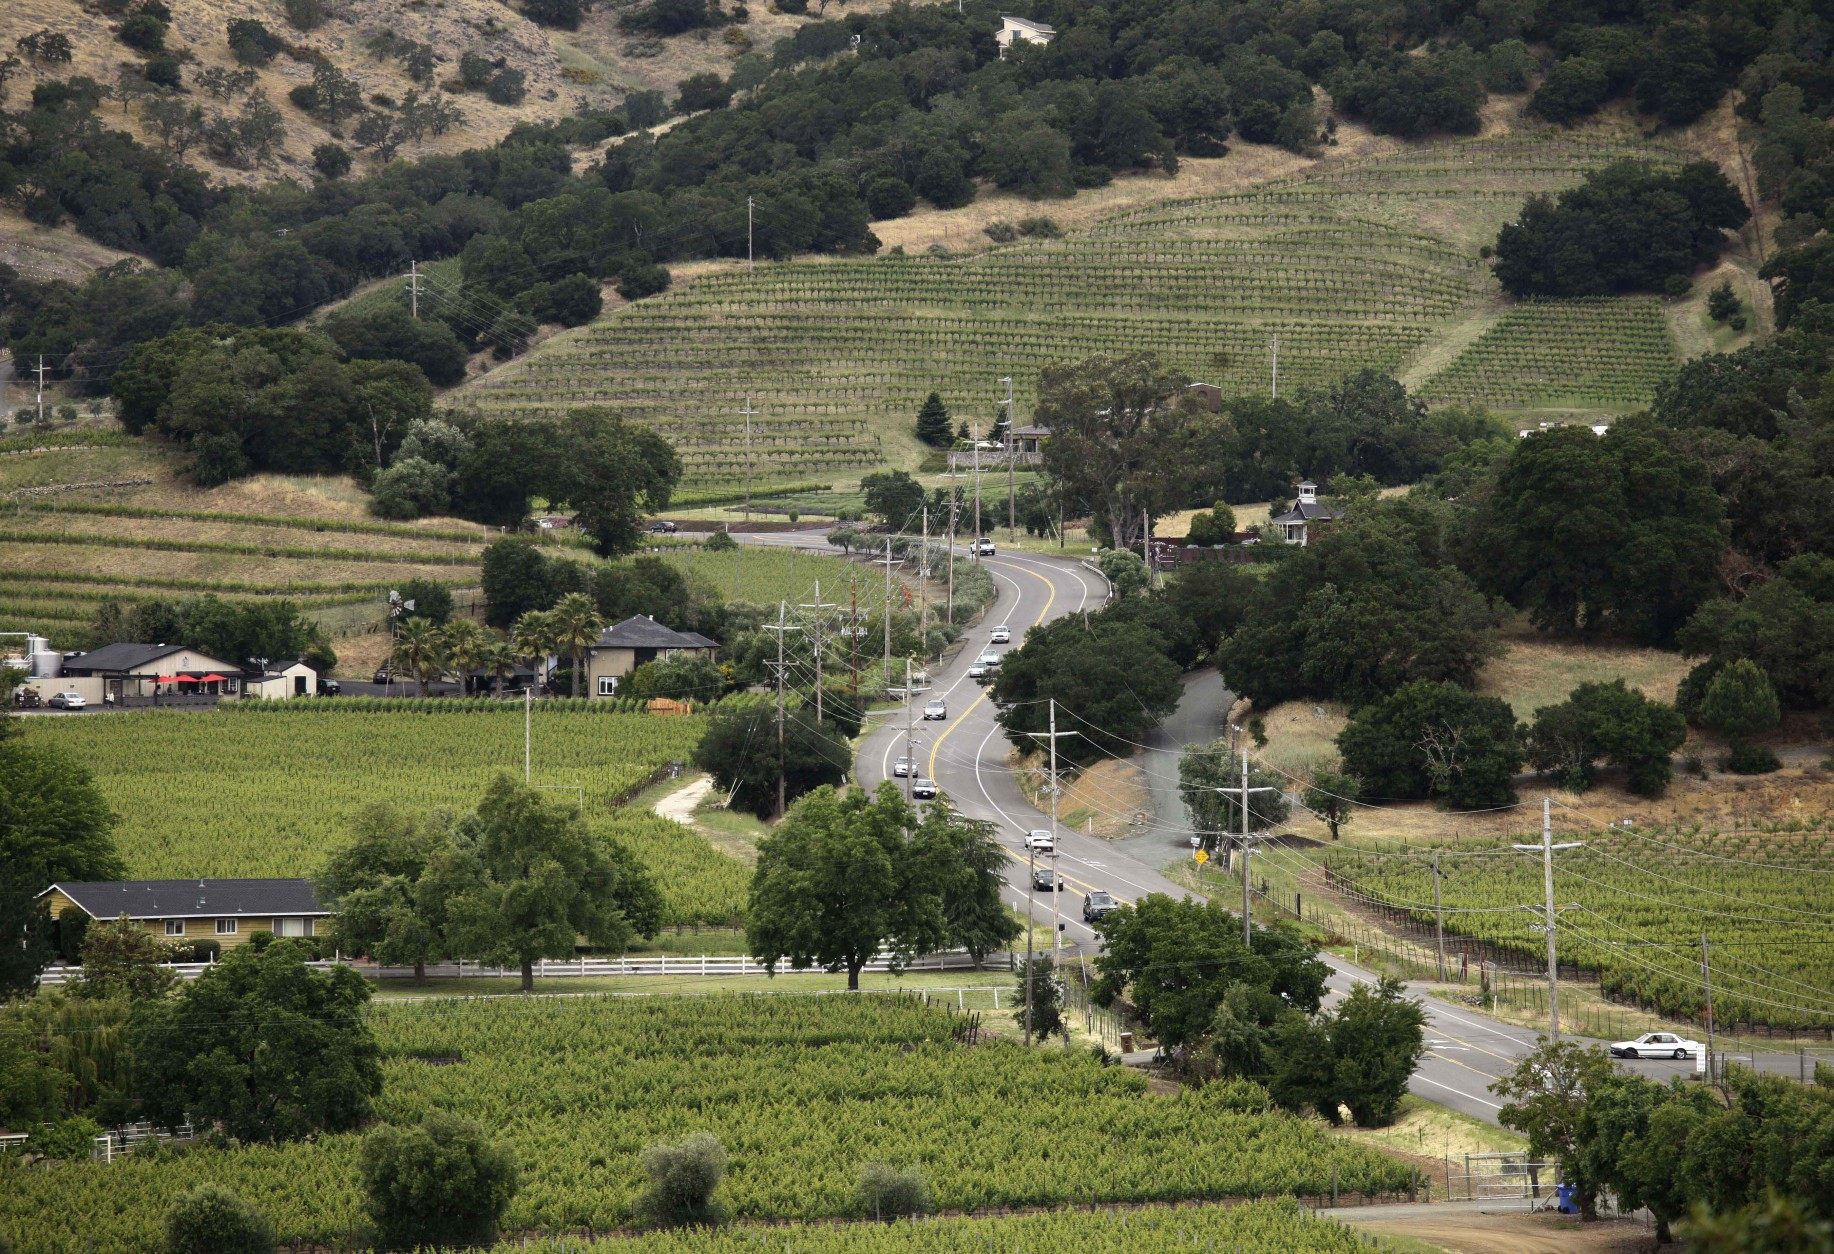 FILE - In this June 2, 2011 file photo, the Silverado Trail winds through the Stags Leap District in this view from Silverado Vineyards in Napa, Calif.The trail more or less runs parallel to Highway 29 but is quieter, winding through green vistas of vineyards and rolling hills. Wineries along this route include Mumm Napa Valley. (AP Photo/Eric Risberg, File)